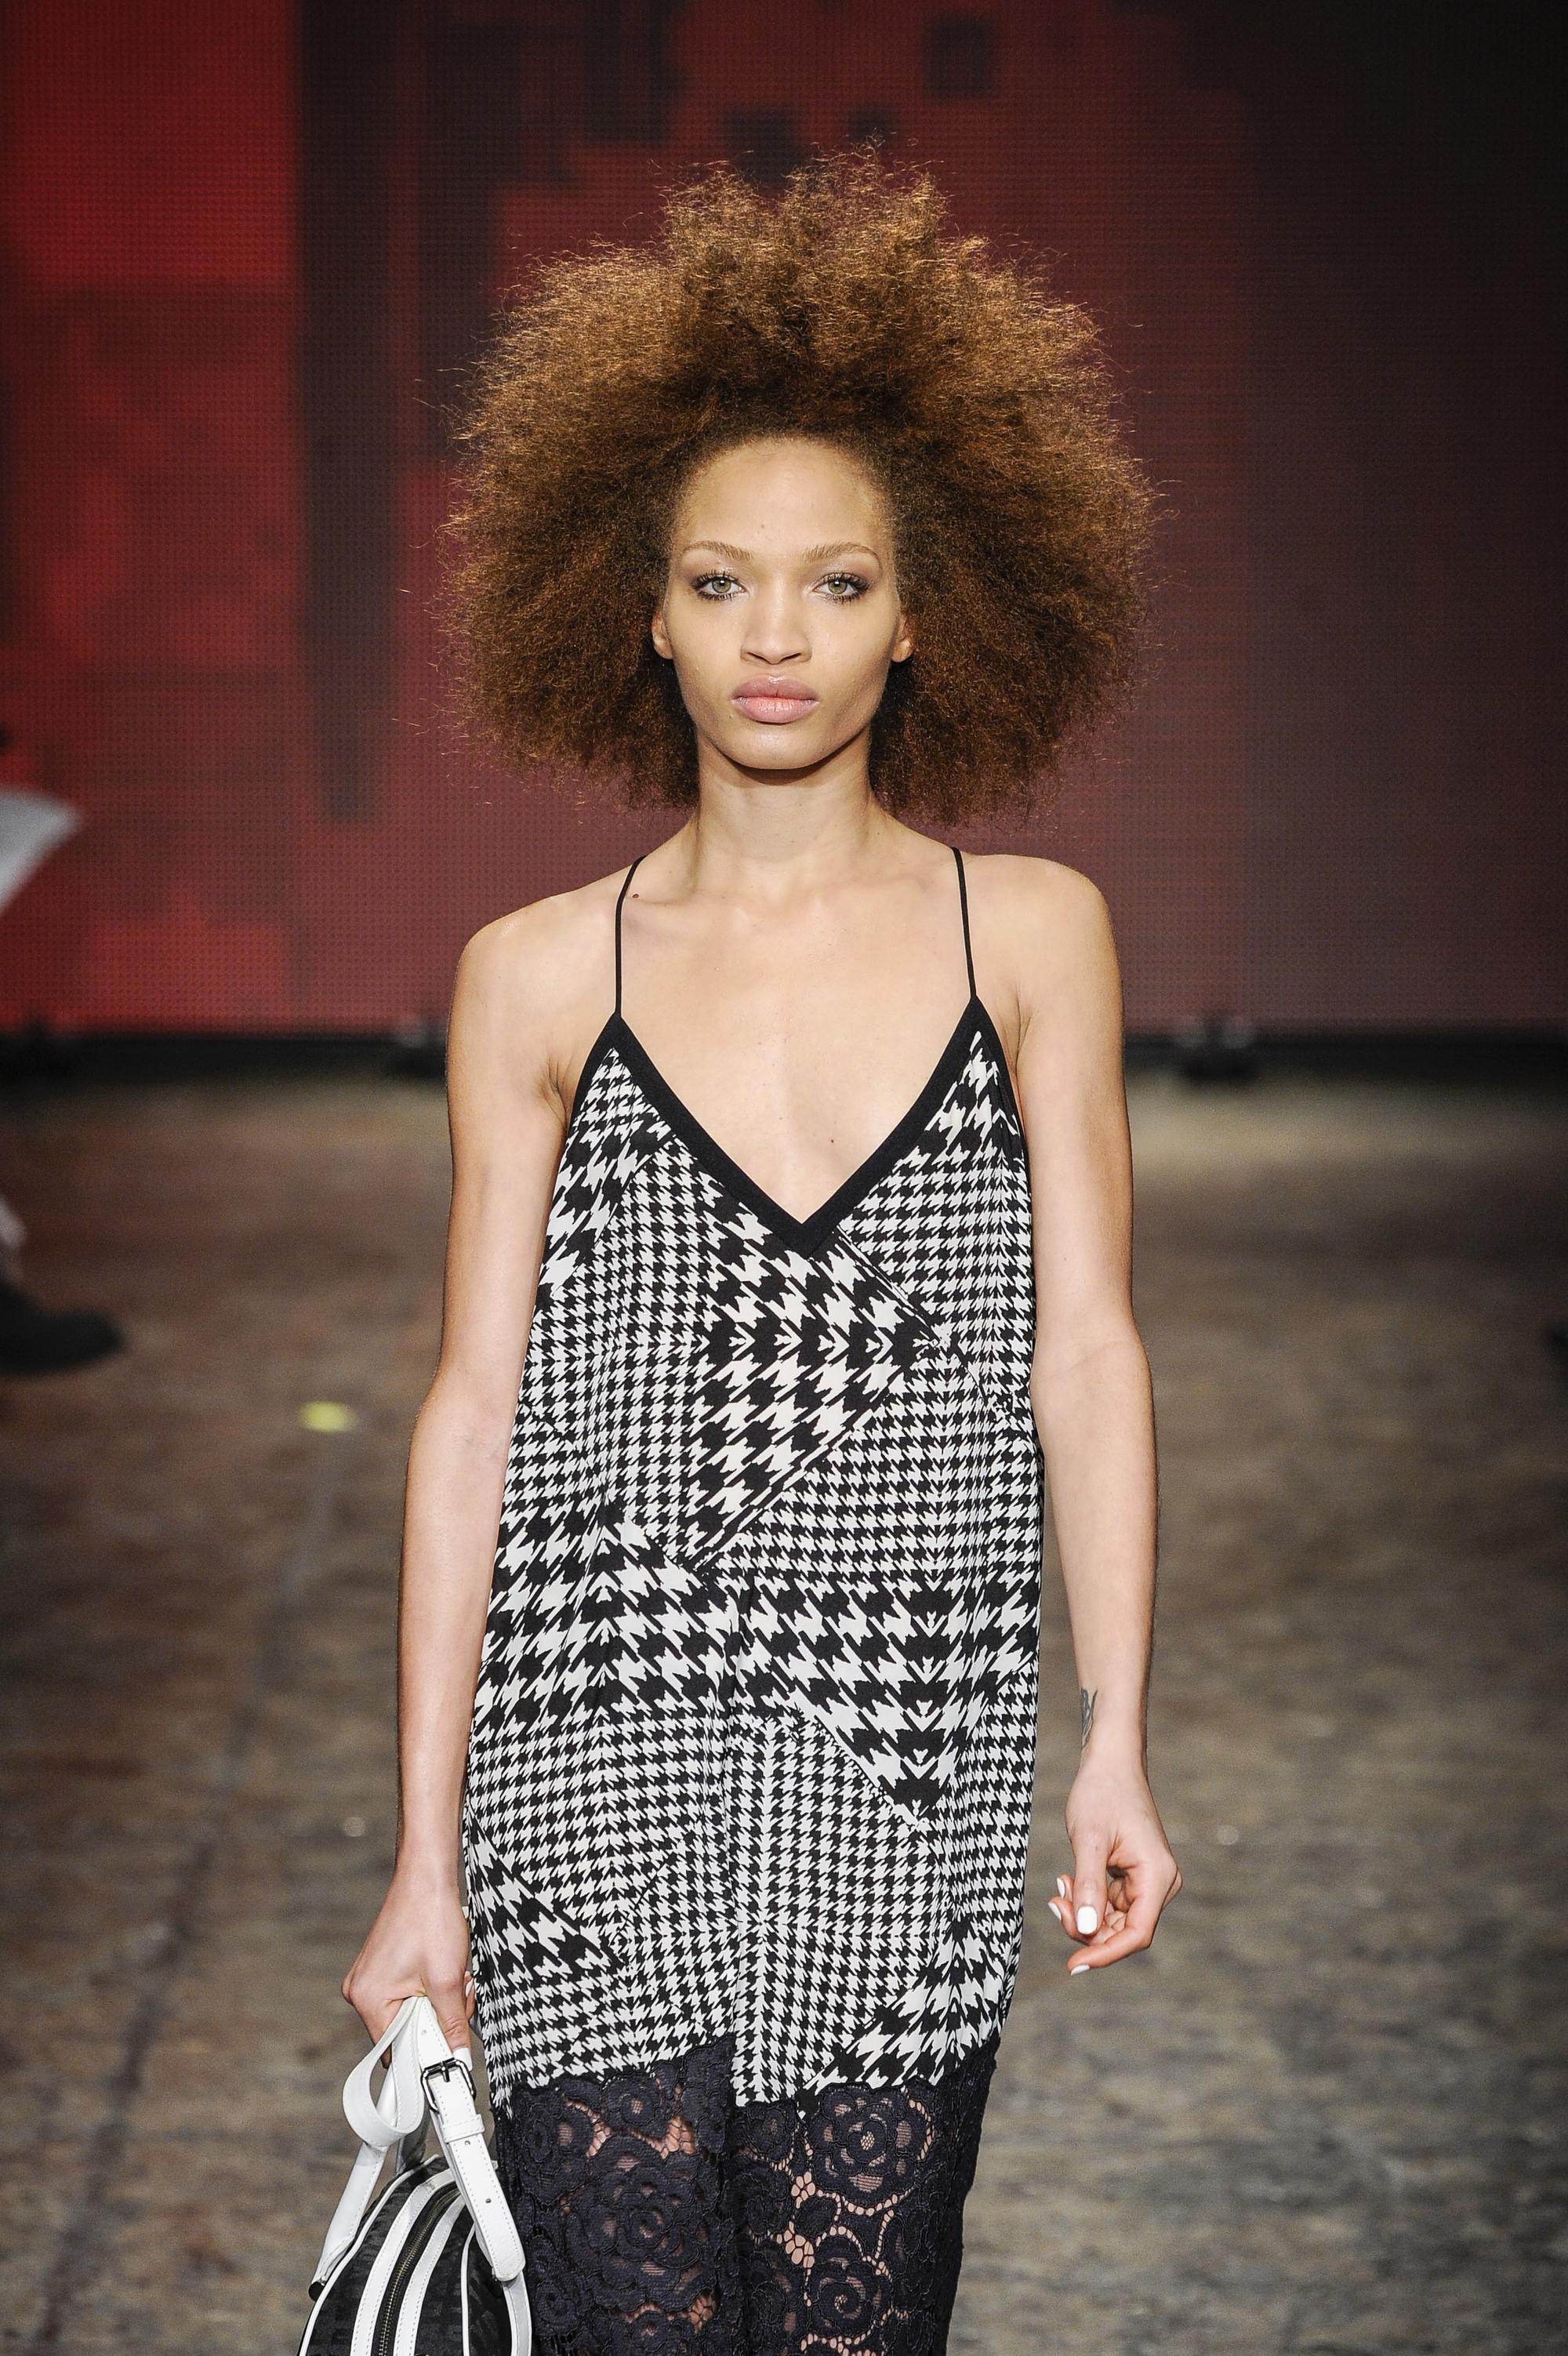 model on runway with black large afro hairstyle